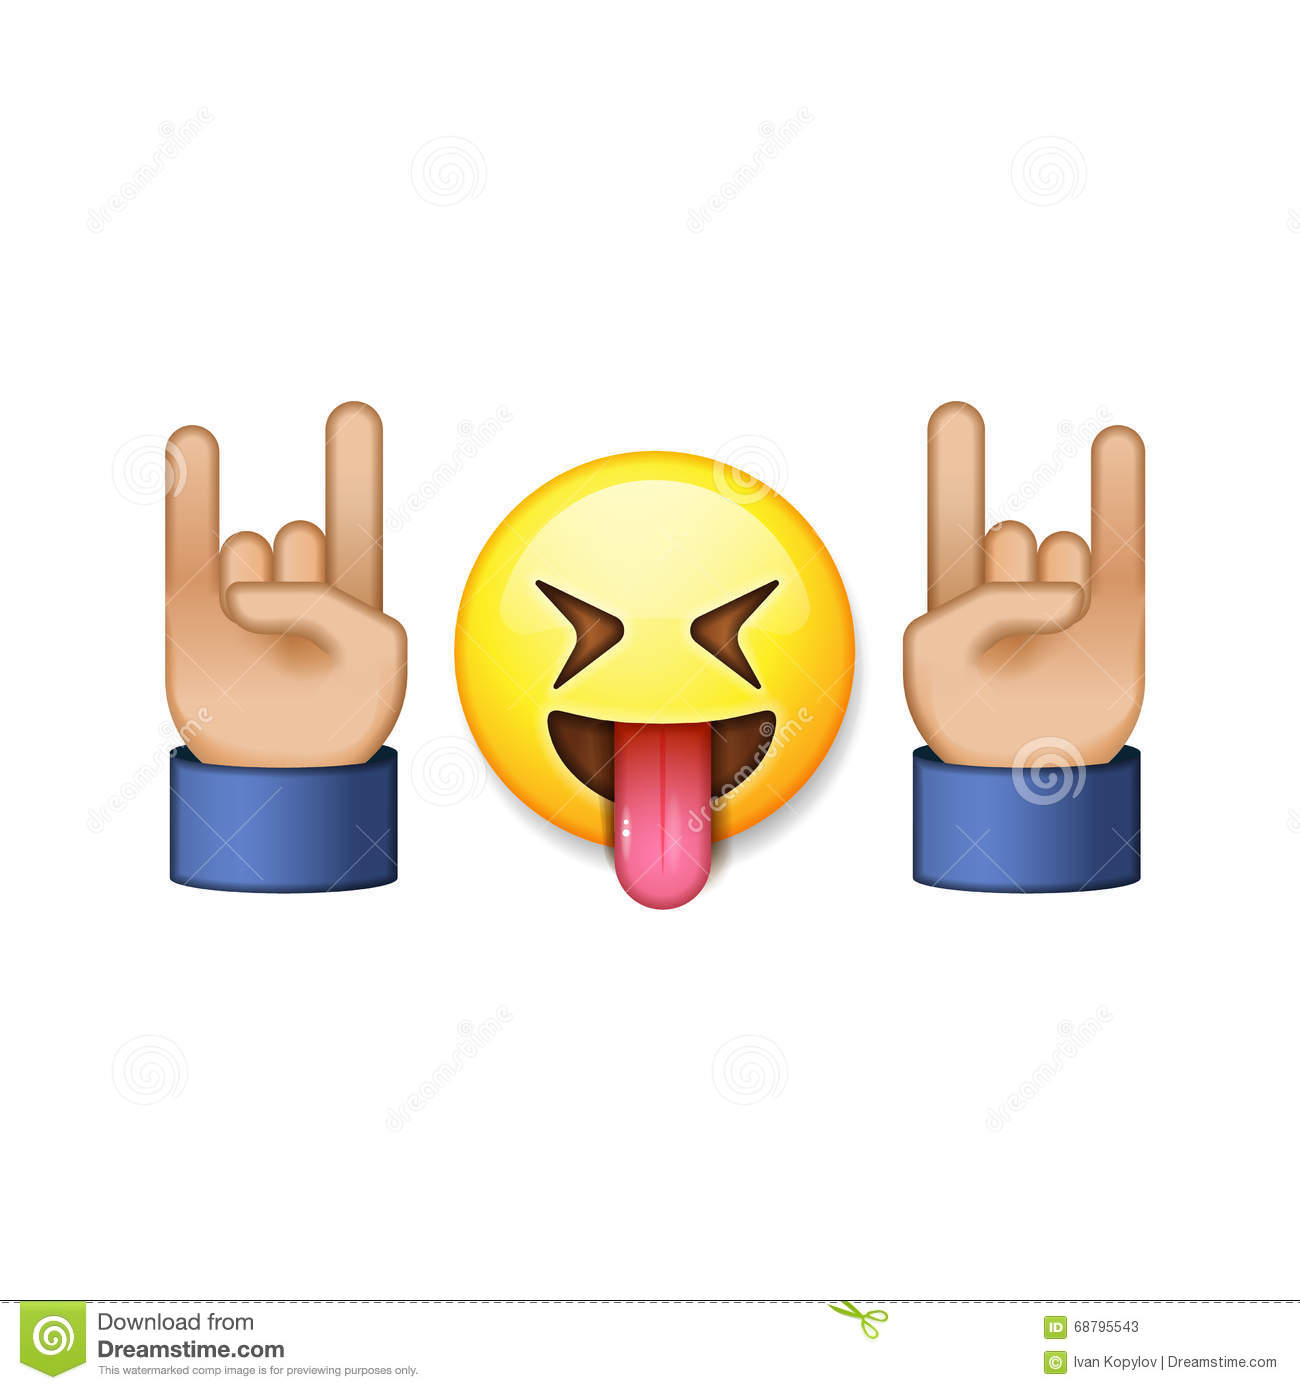 Rock And Roll Sign, Smiling Emoji Icon Stock Vector - Image: 68795543